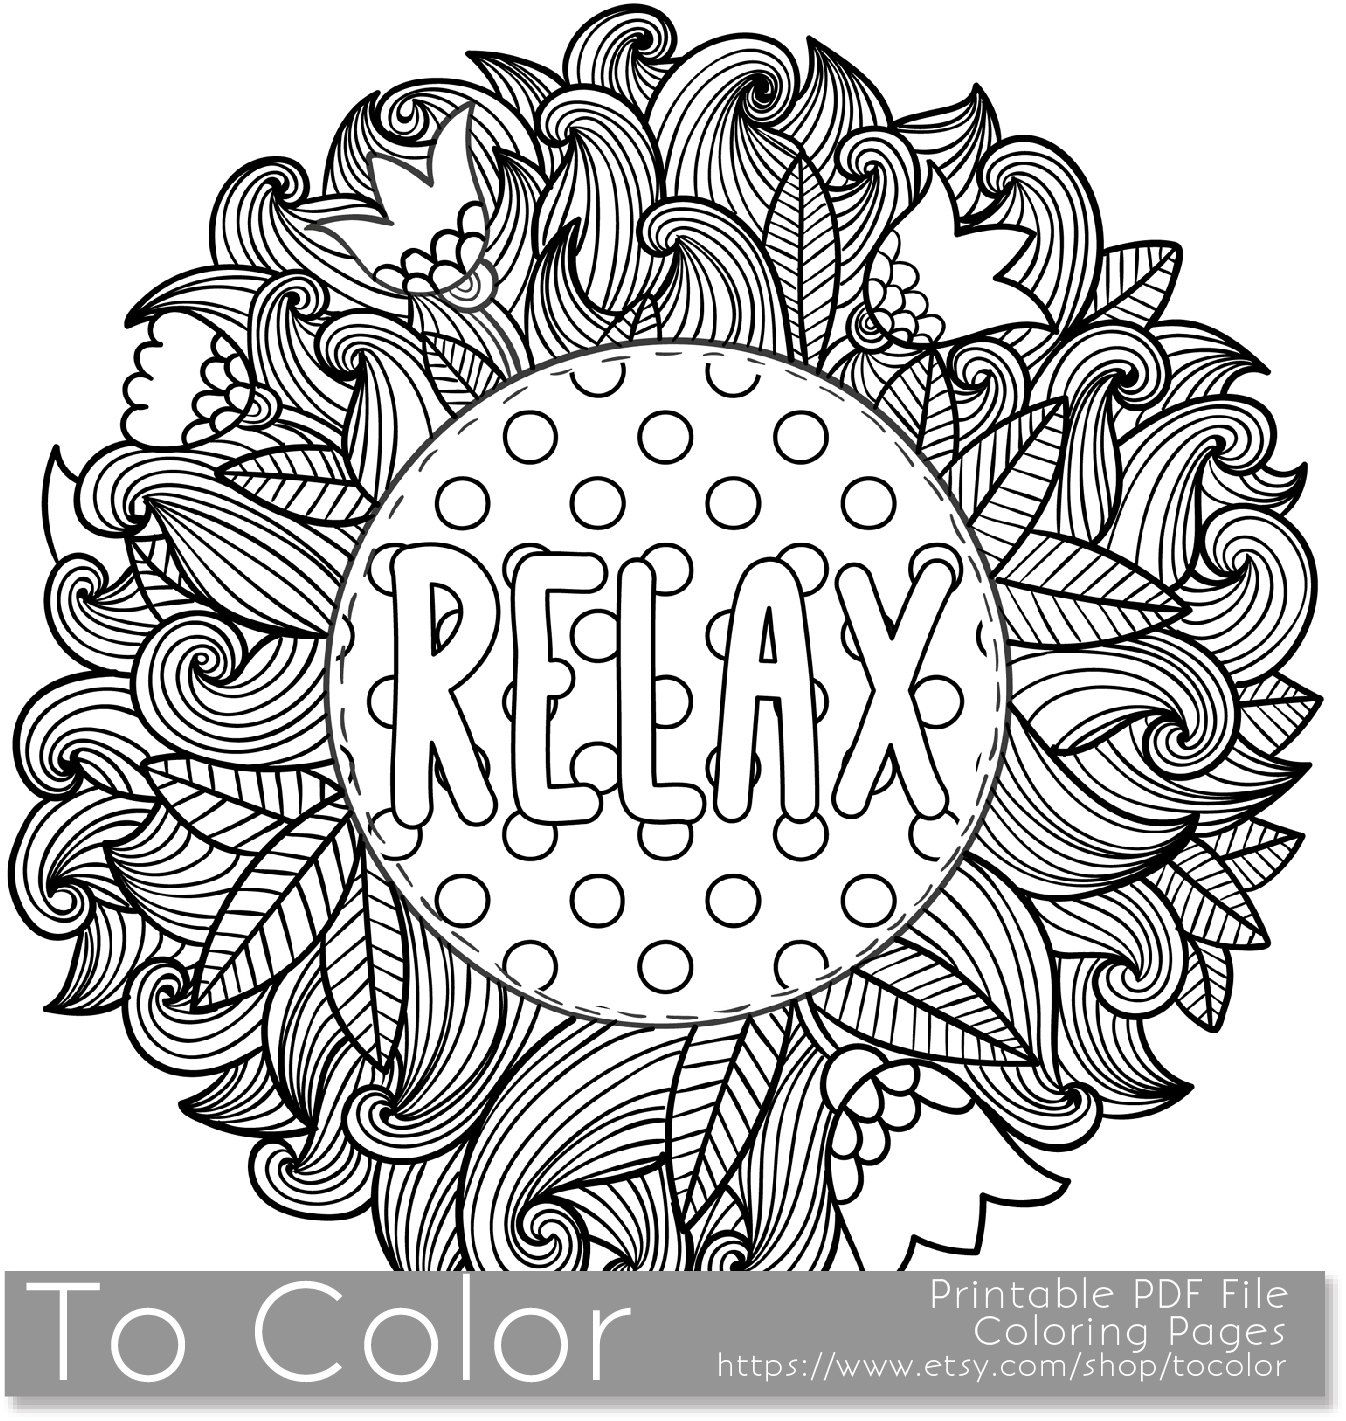 Pin by Kate Pullen on Coloring Pages | Pinterest | Coloring books ...